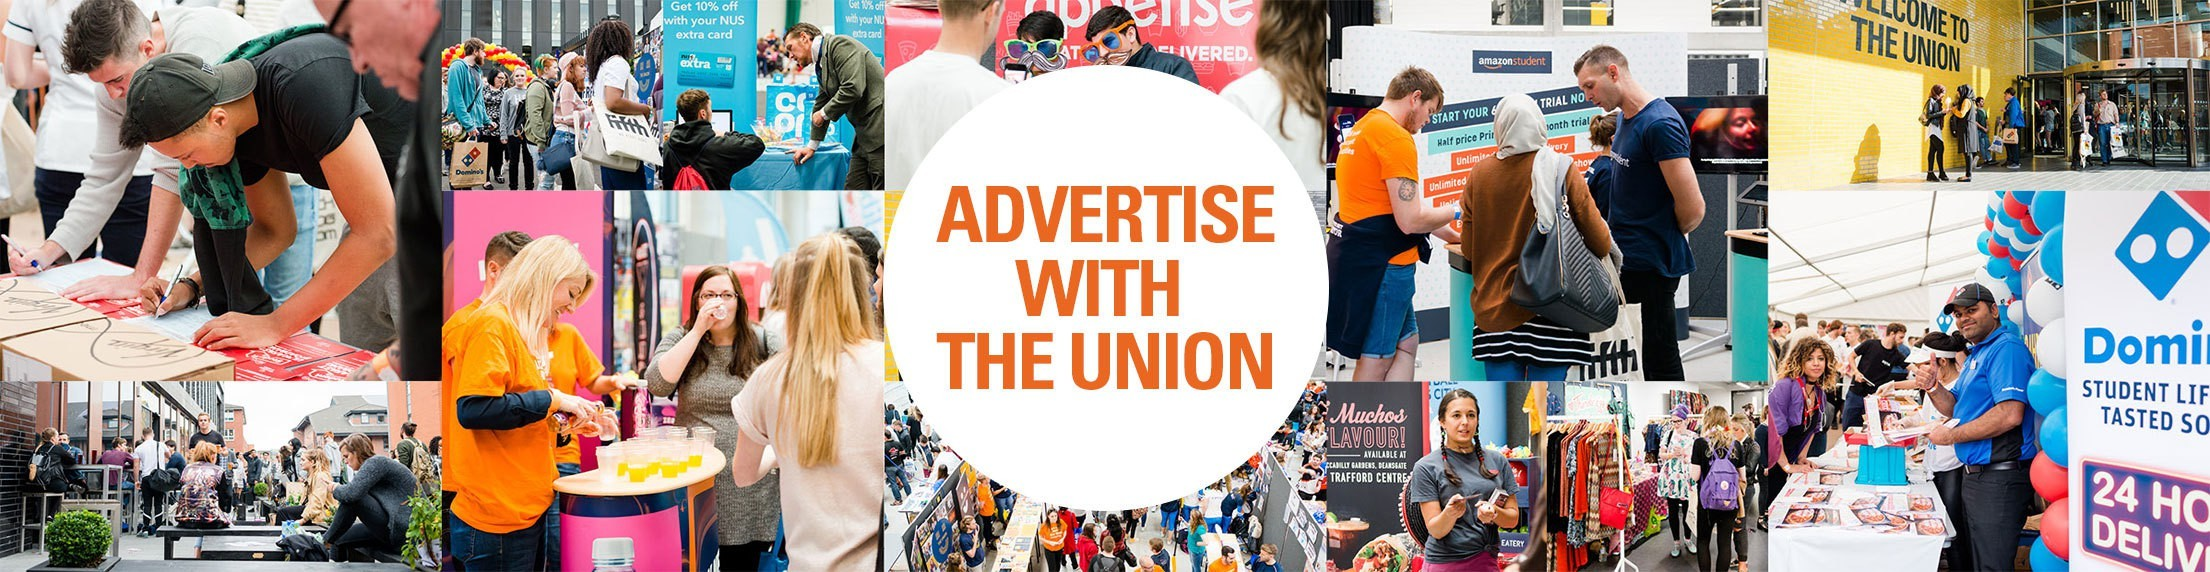 Advertise with the Union and students.